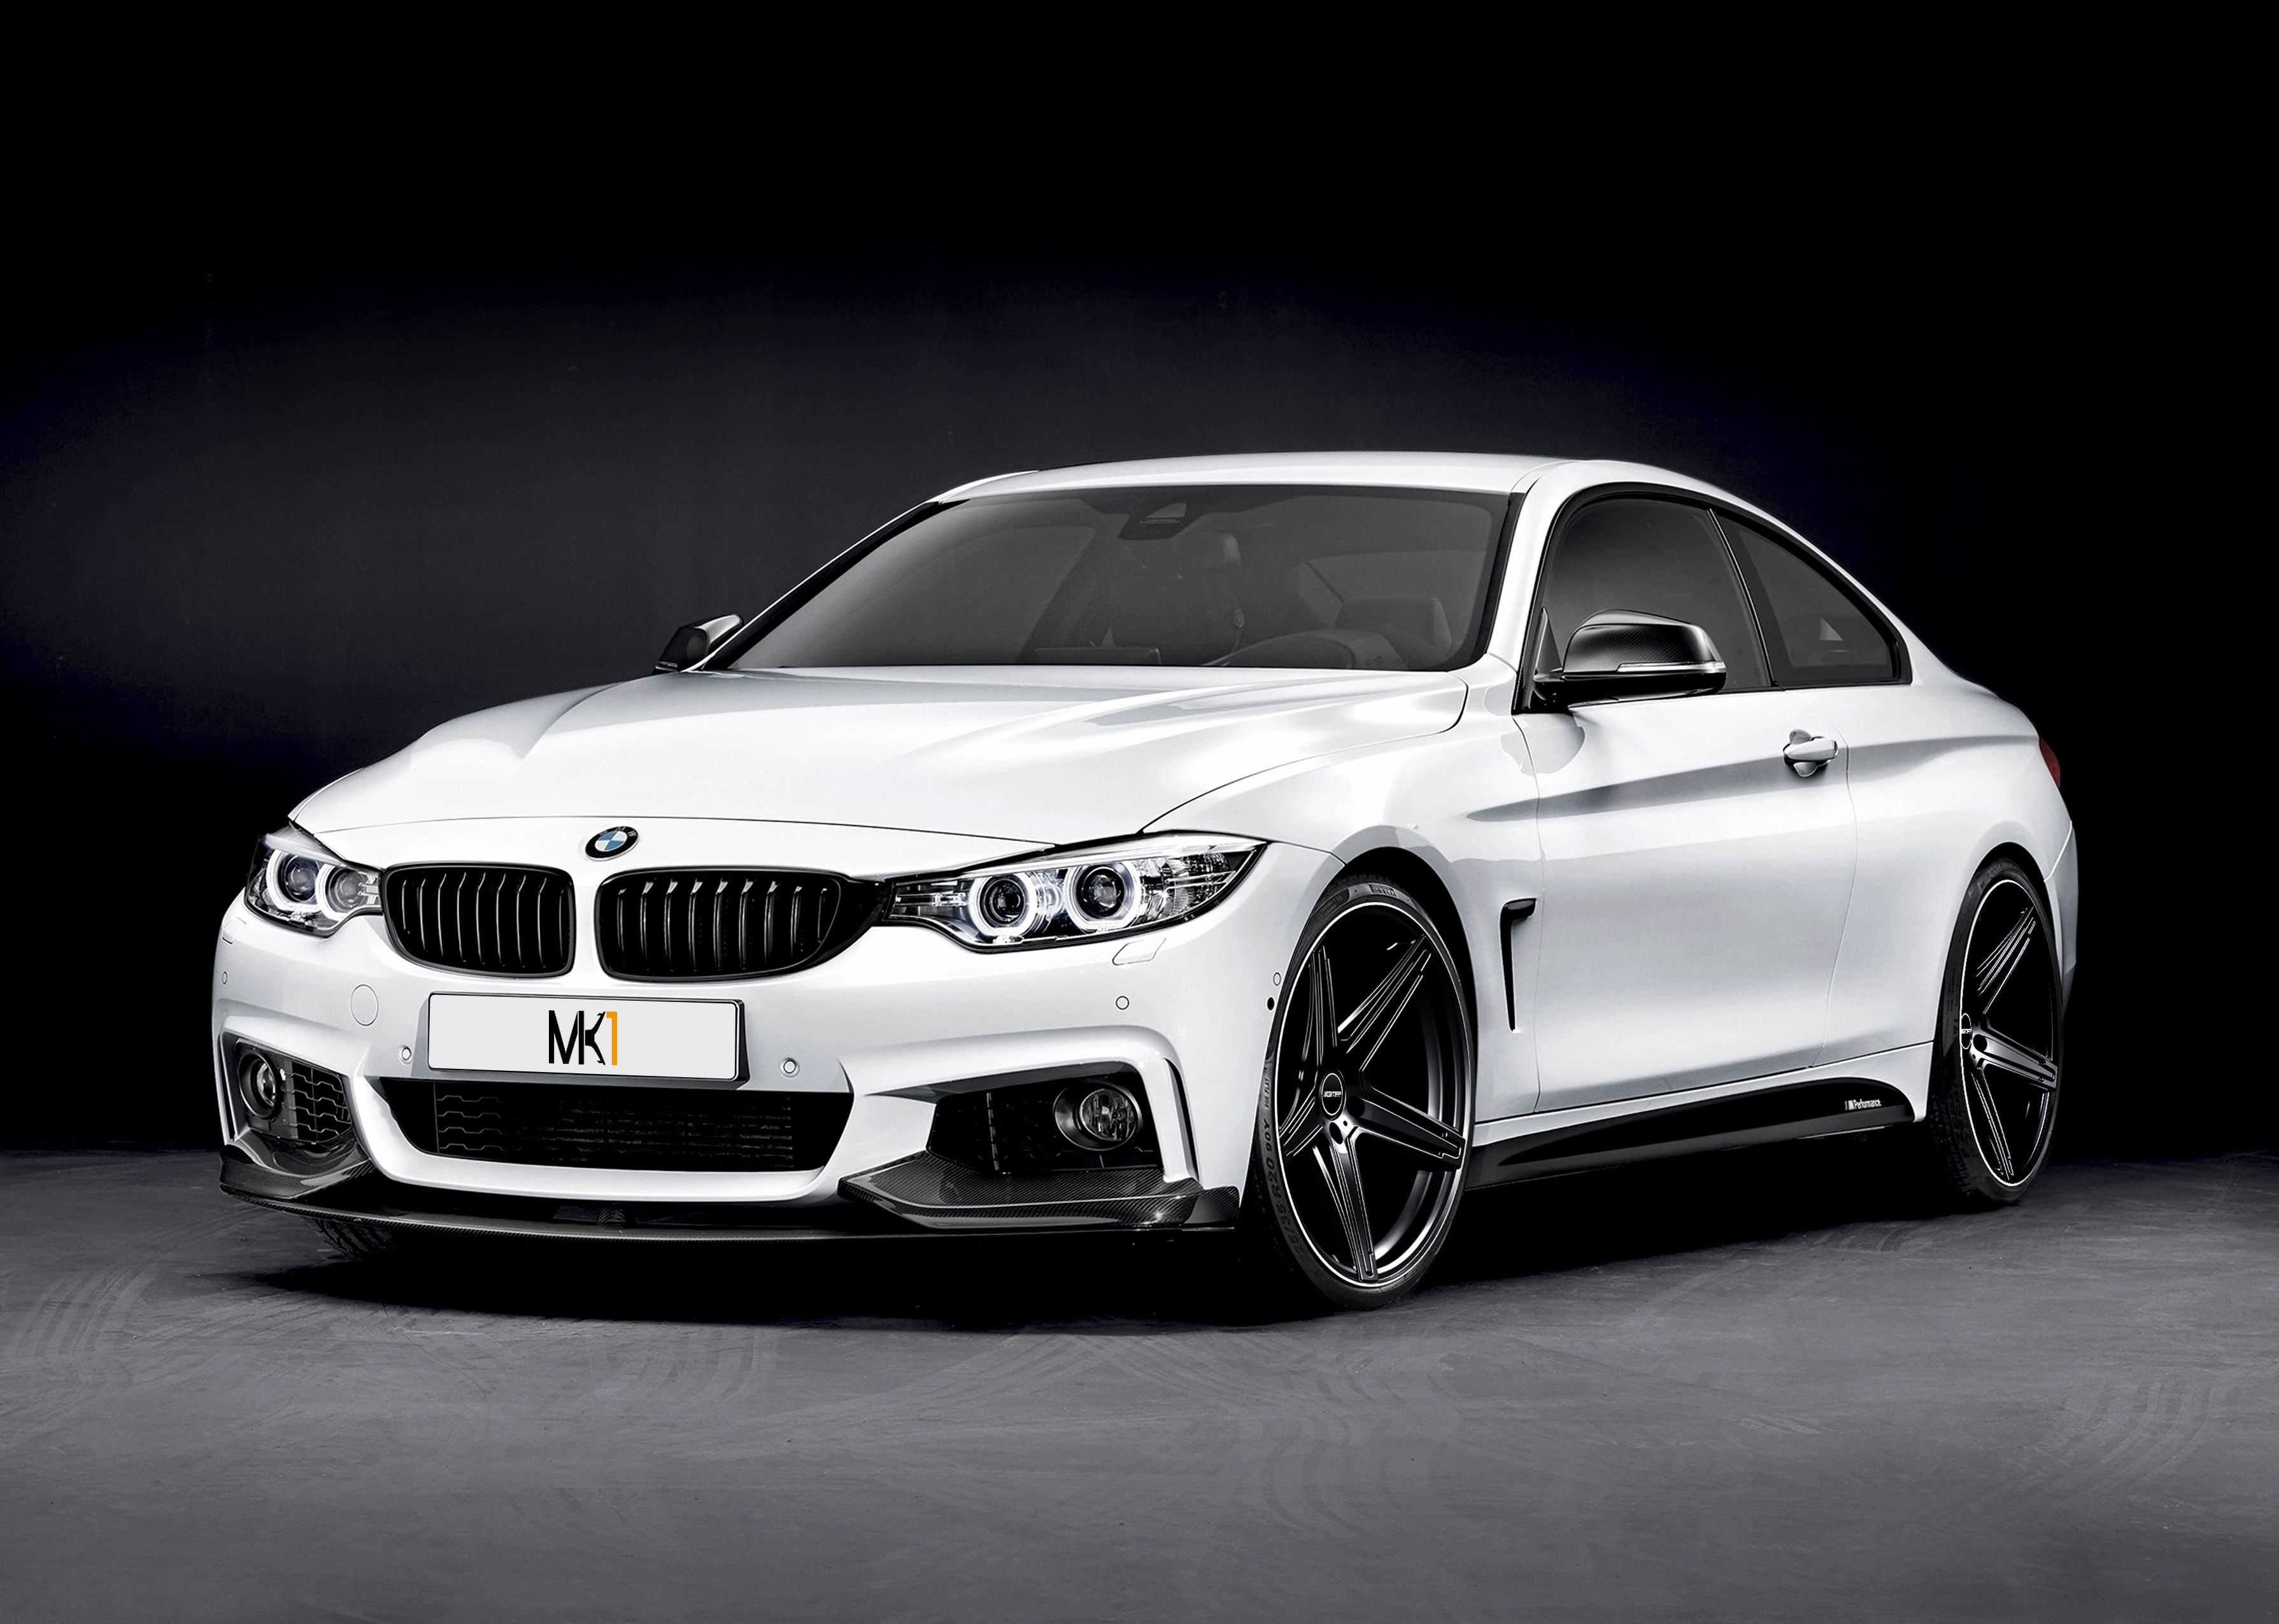 BMW 4 Series Coupe with MK1 Black Diamond Lip professional